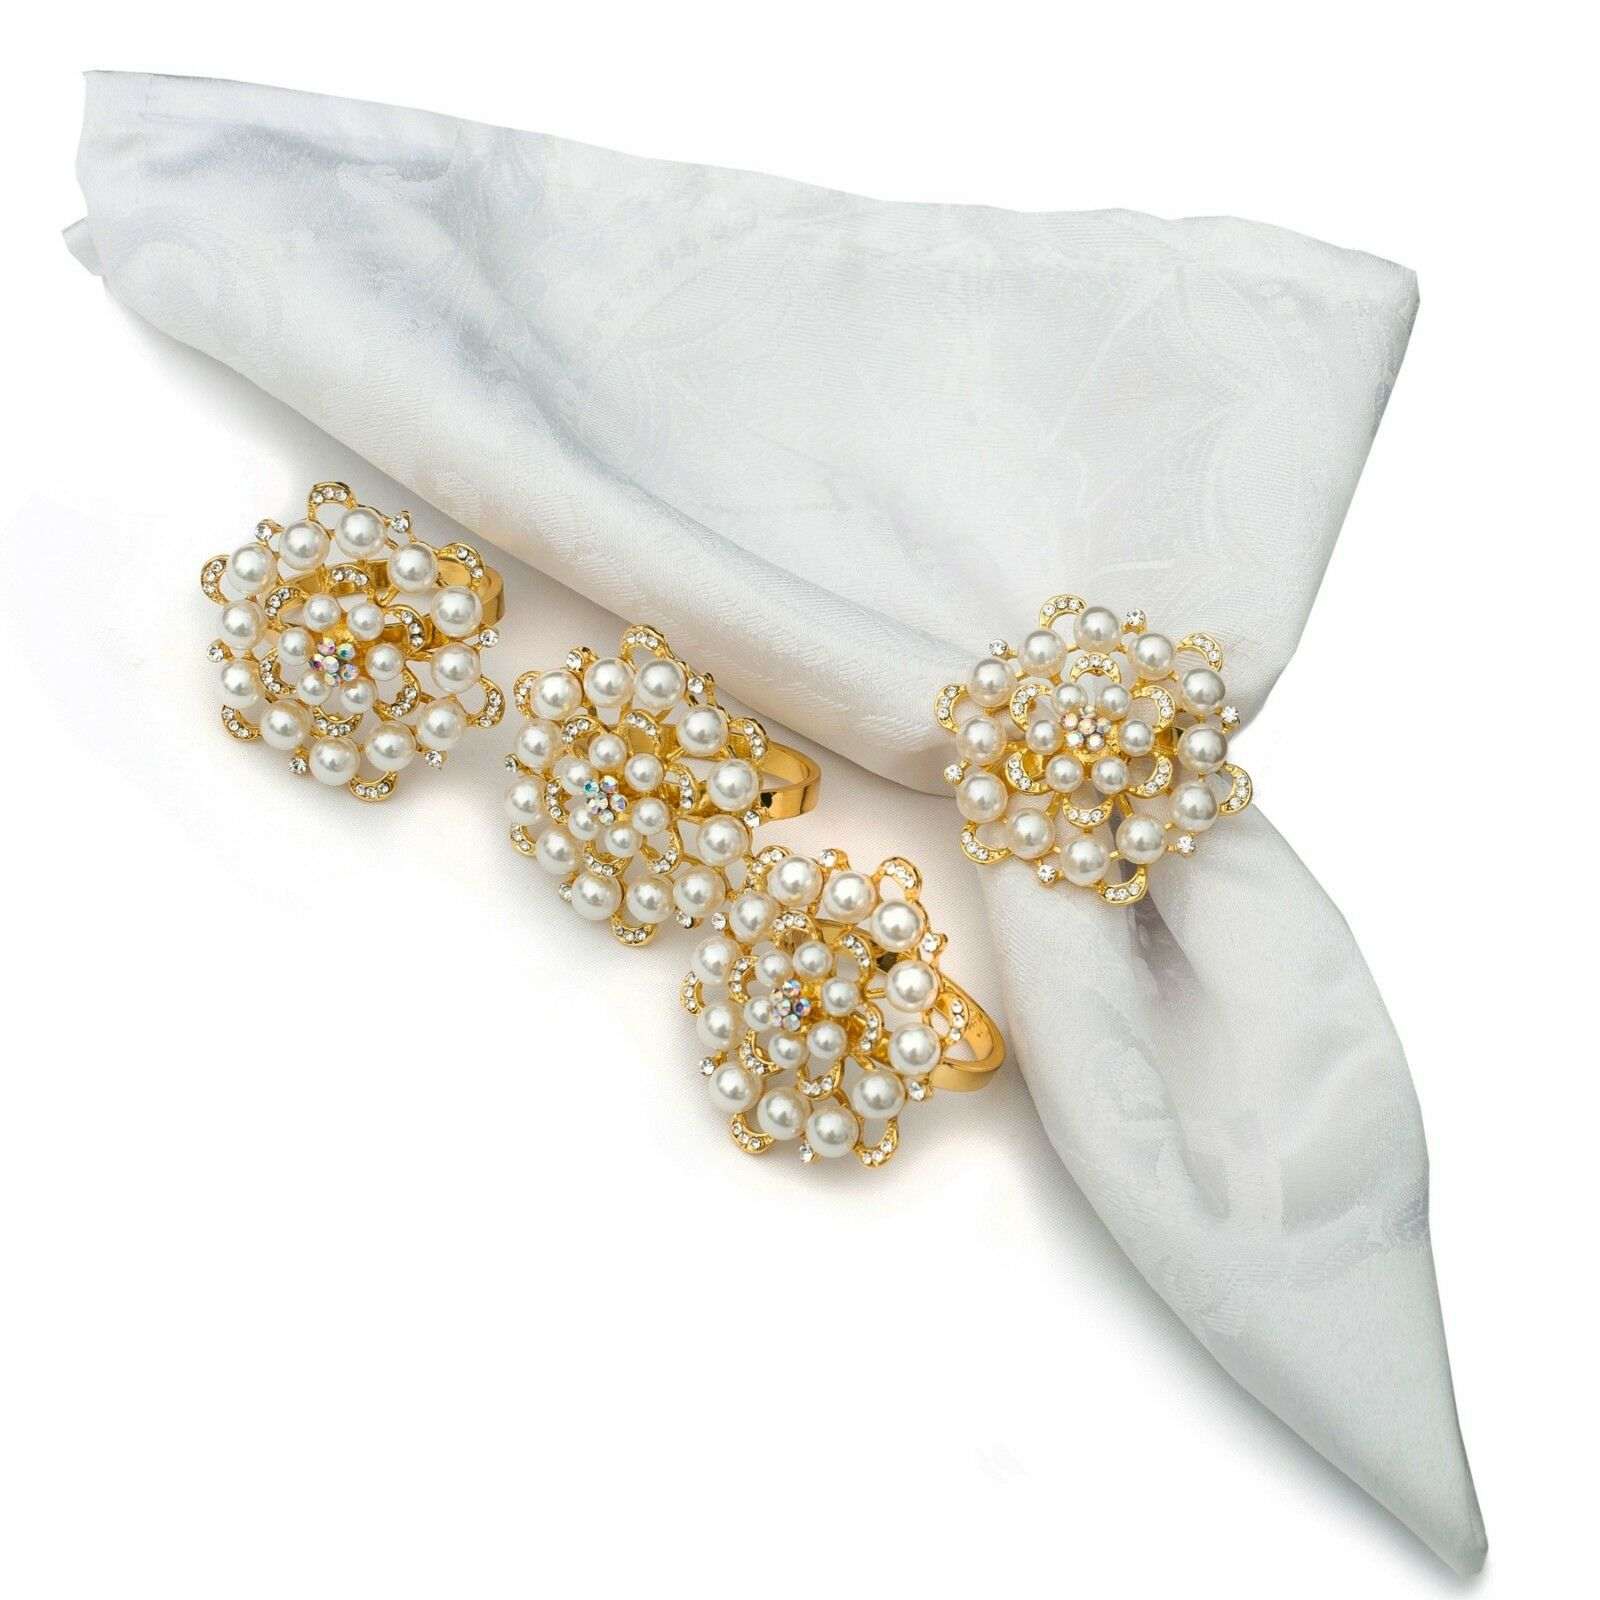 Cynthia Rowley White Pearl Beaded Napkin Rings Set Of 4 For Sale Online Ebay